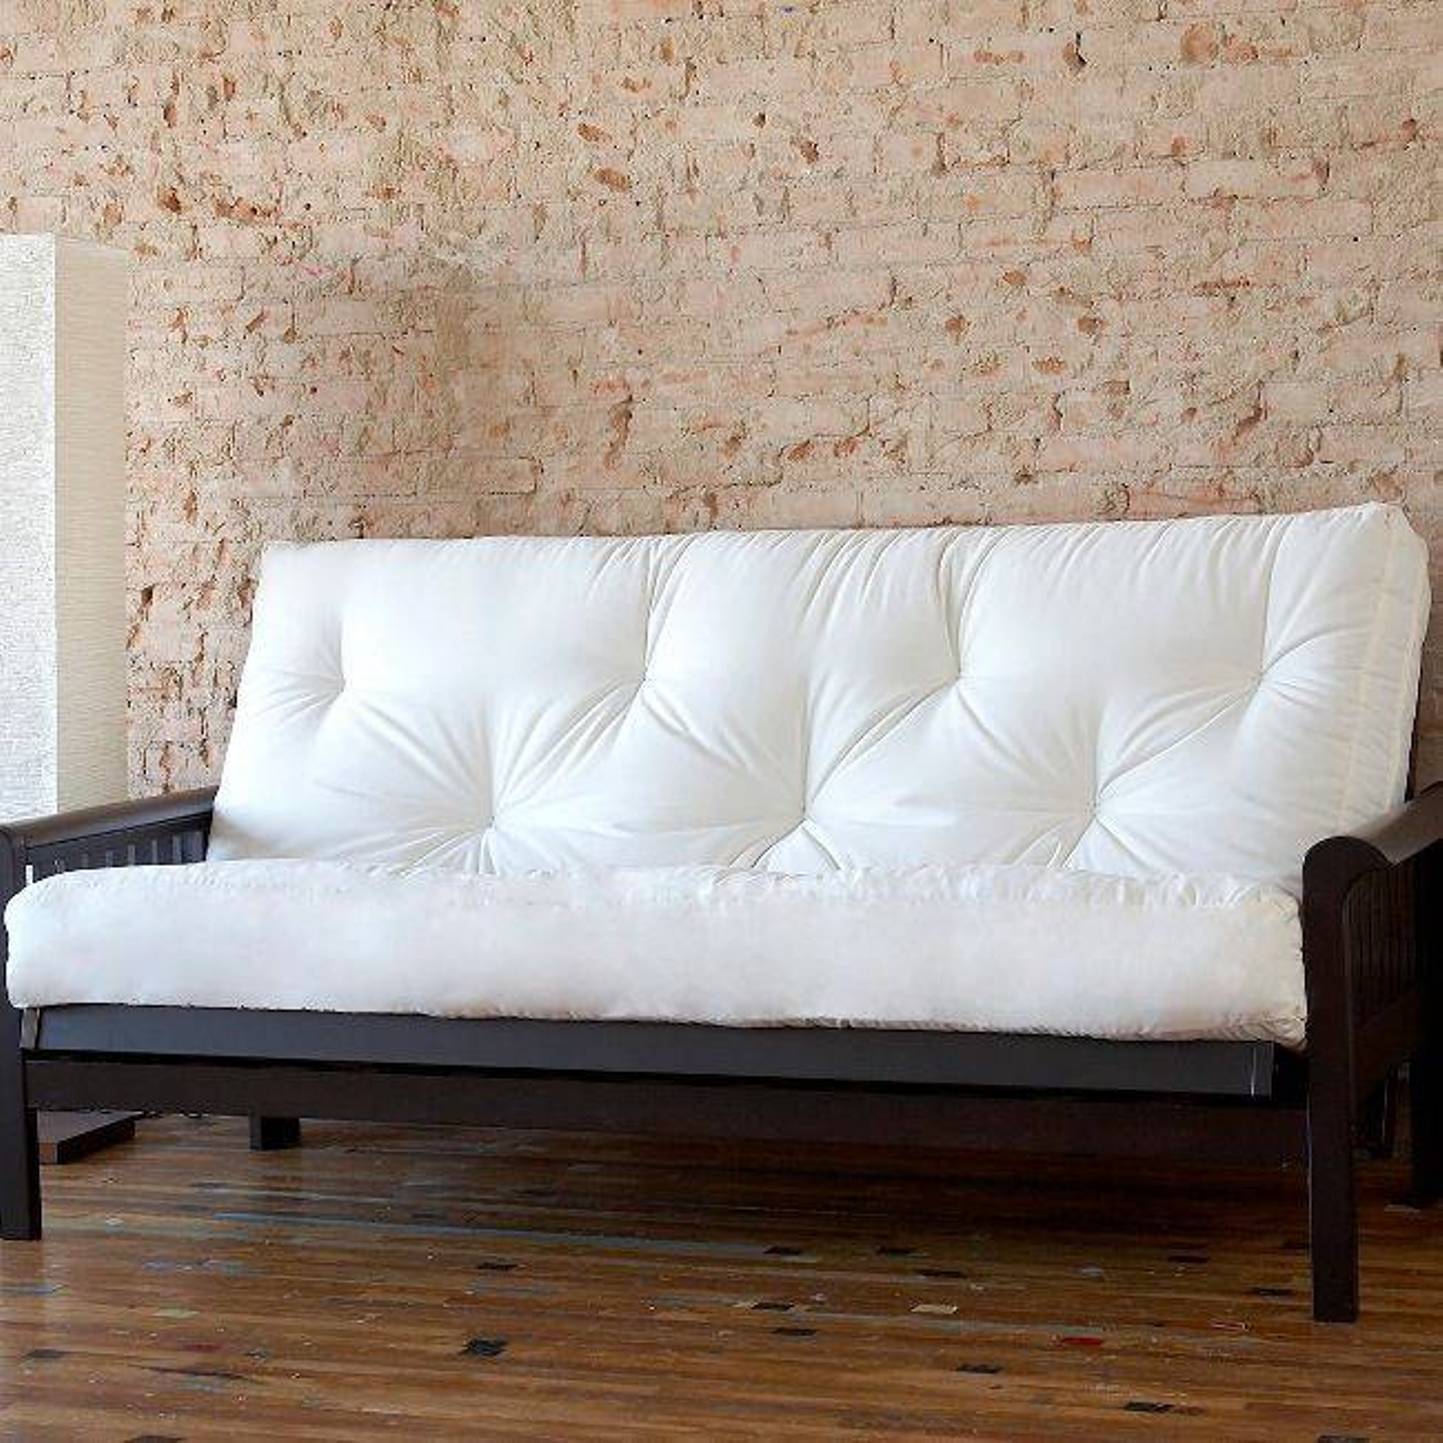 white cheap futons with black legs and arms on wooden floor matched with natural brick wall for home decor ideas